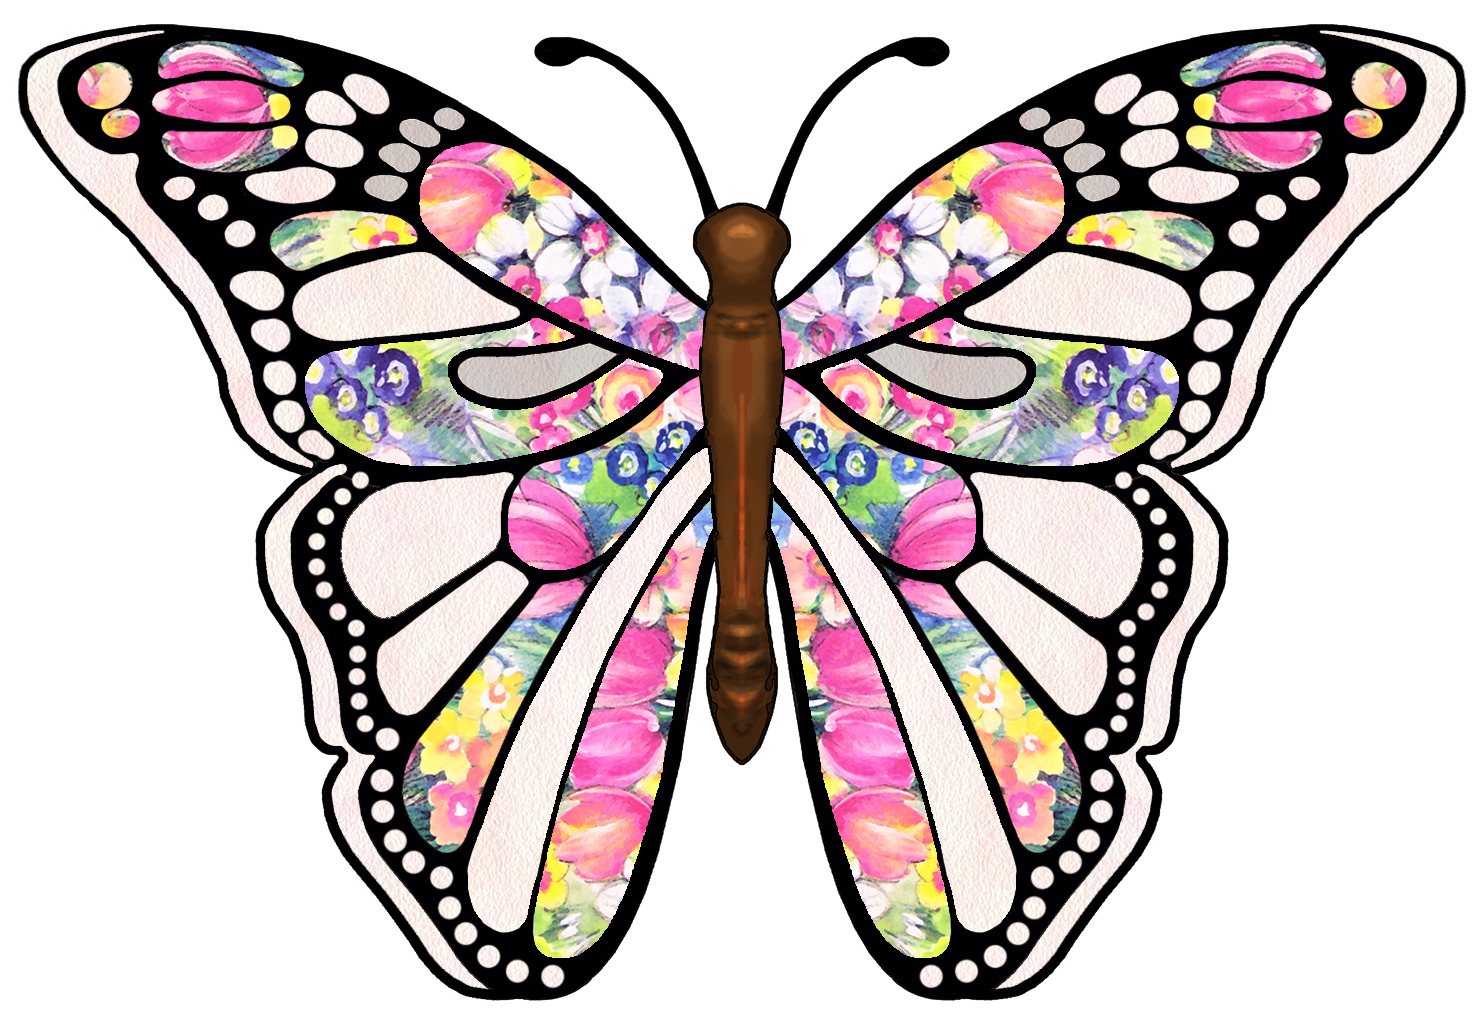 Free Printable Butterfly Clip Art Freeuse Download - Rr Collections - Free Printable Butterfly